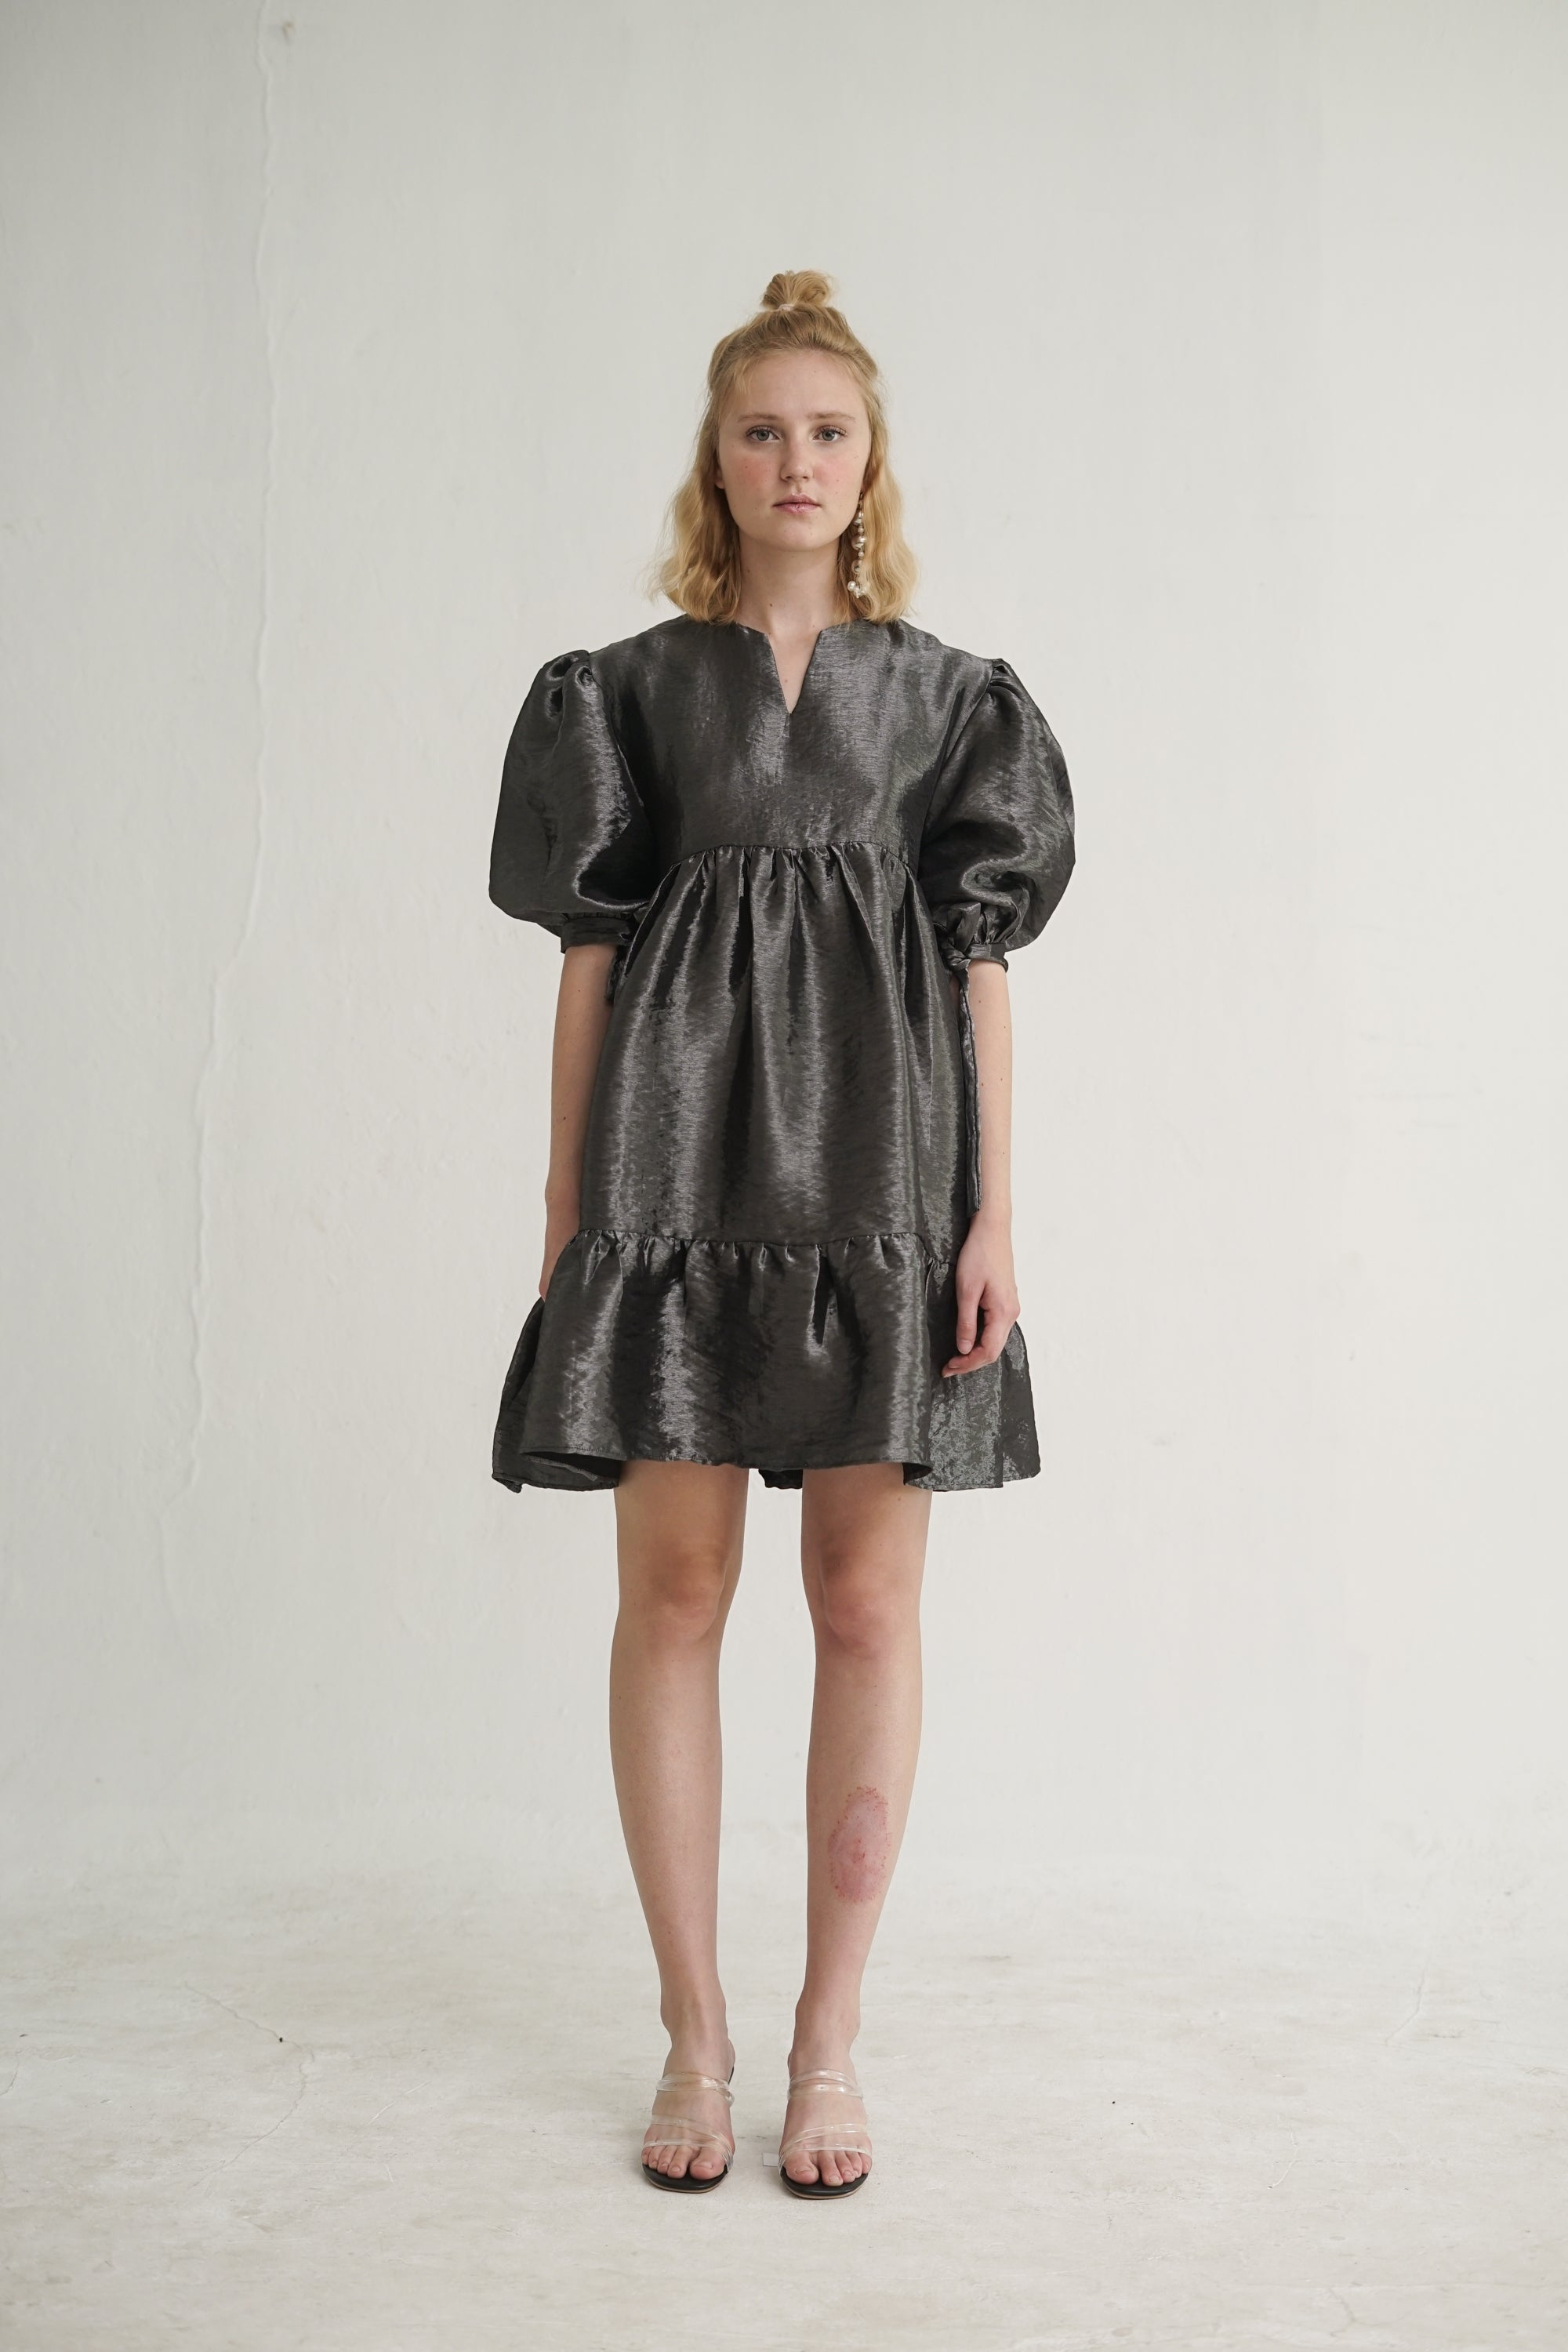 Dolly Metallic Dress